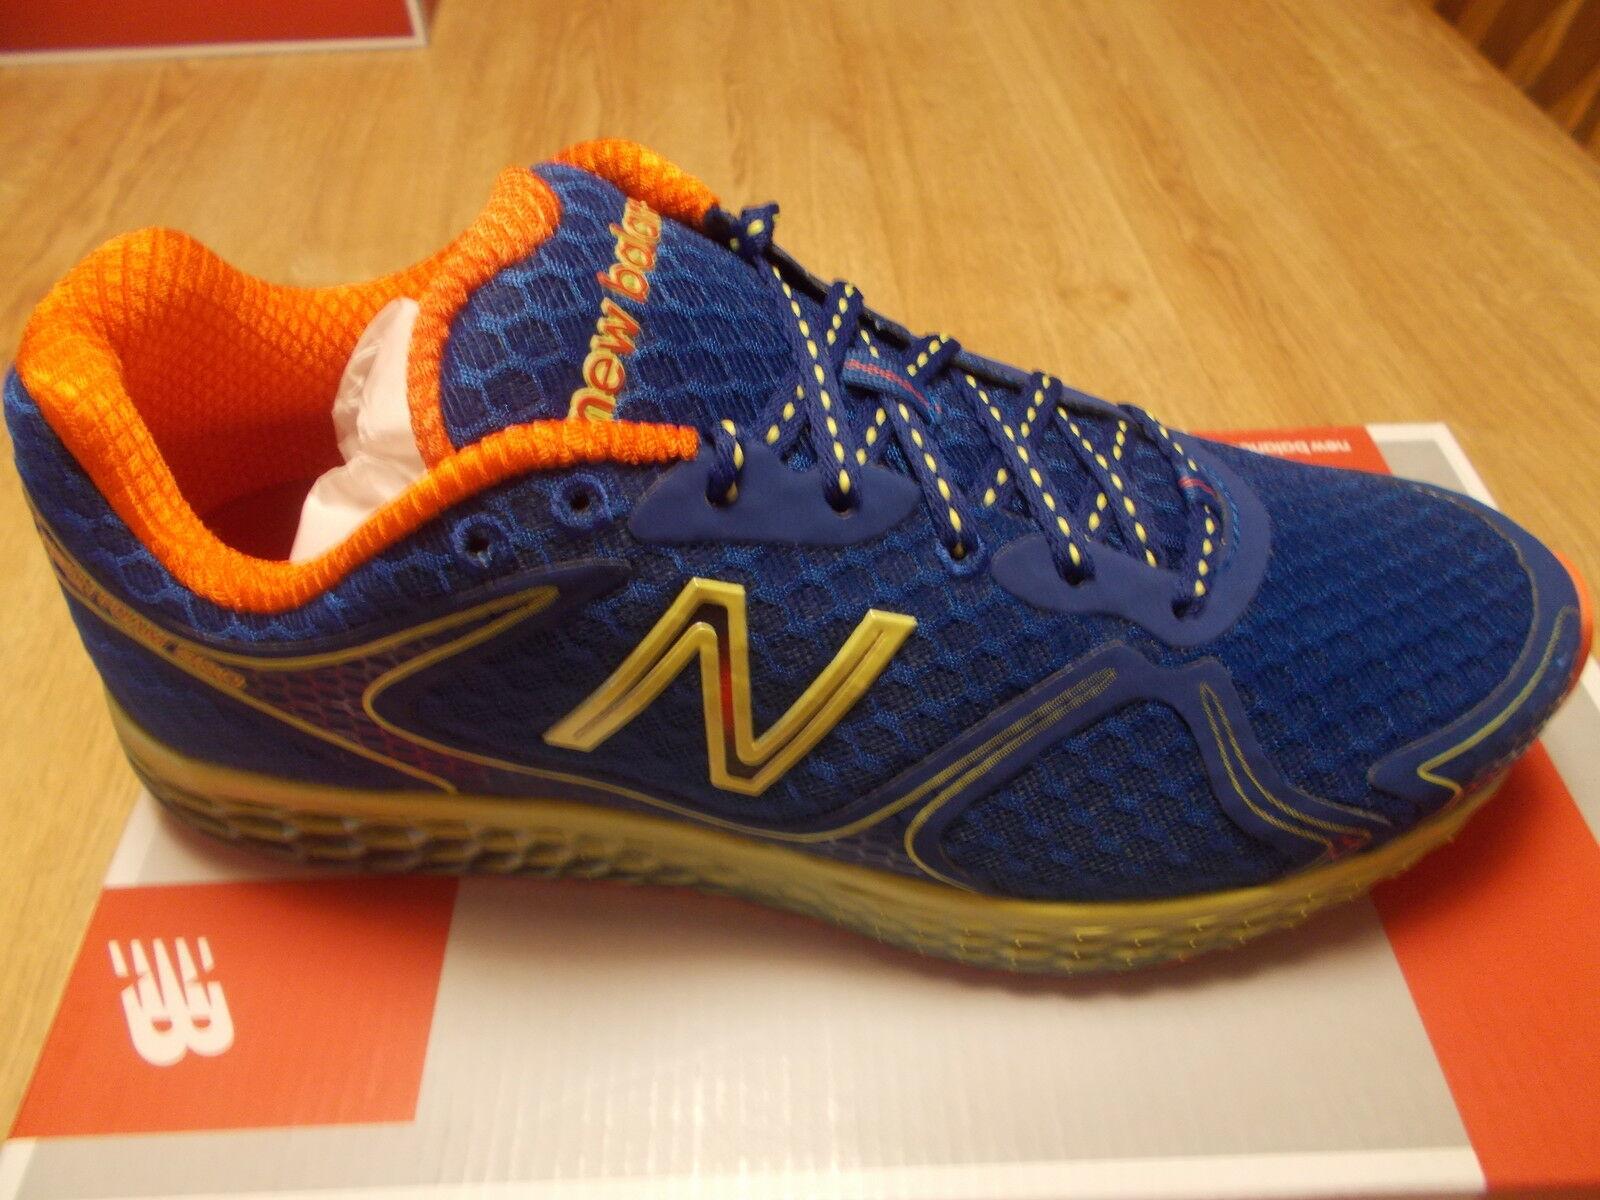 NEW BALANCE MEN'S M980 RUNNING SHOE WIDE (2E) MULTIPLE SIZES 9 TO 13 NEW